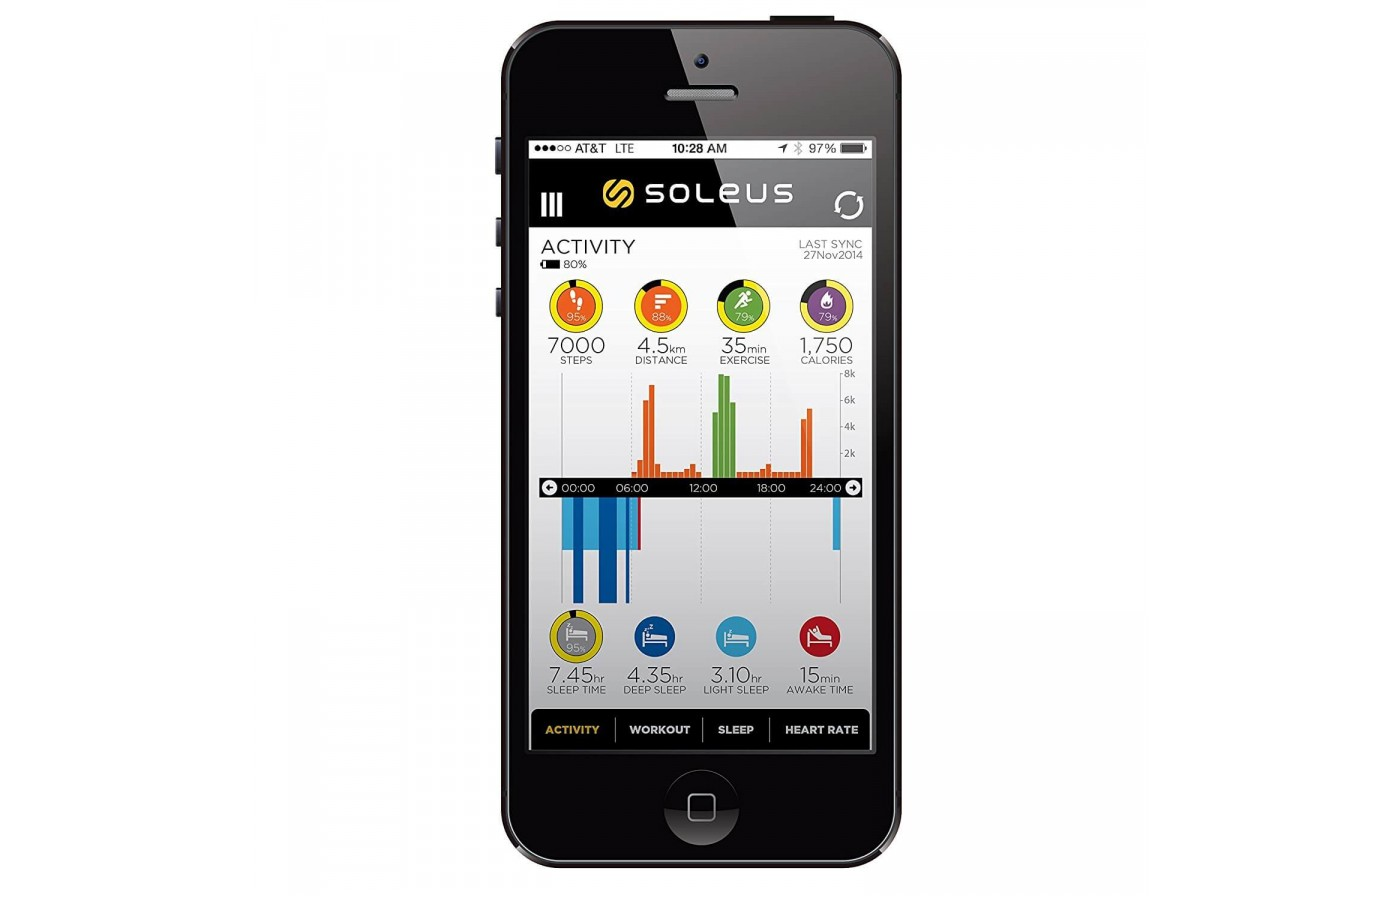 The Soleus Thrive Activity Tracker works with the Soleus app (no longer available in the App Store)